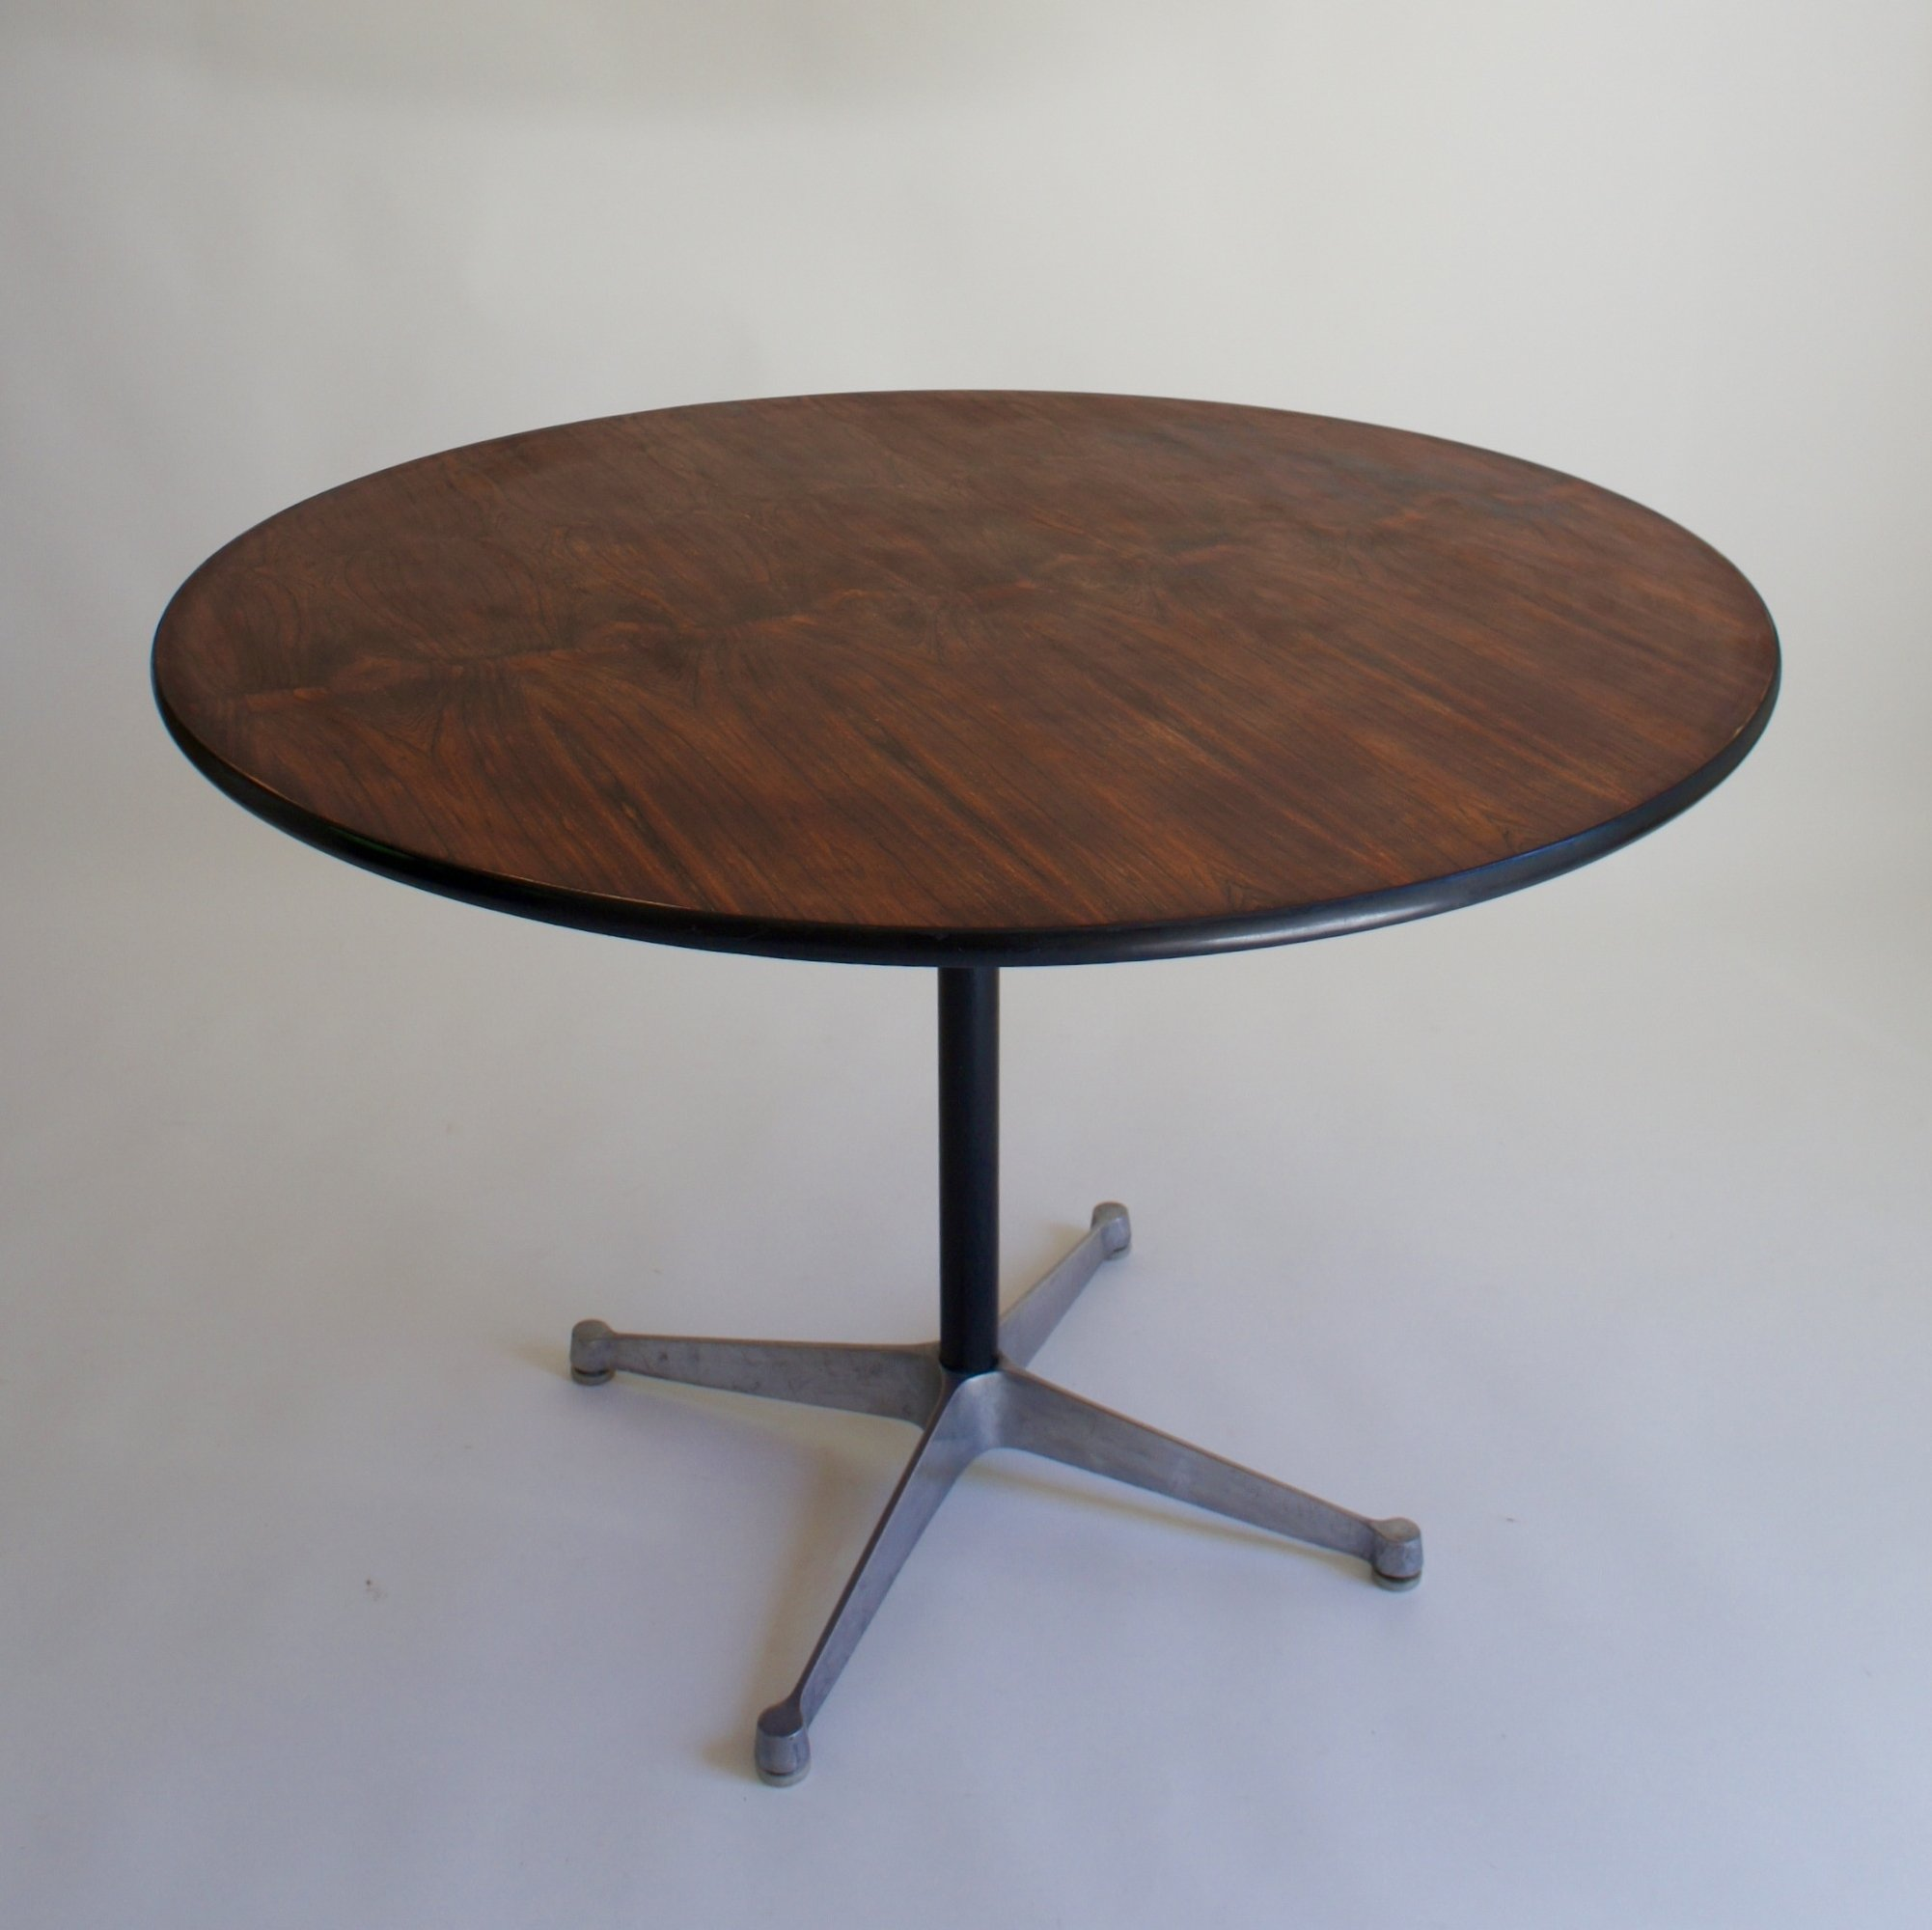 1960 S Eames Rosewood Dining Table By Herman Miller 82116